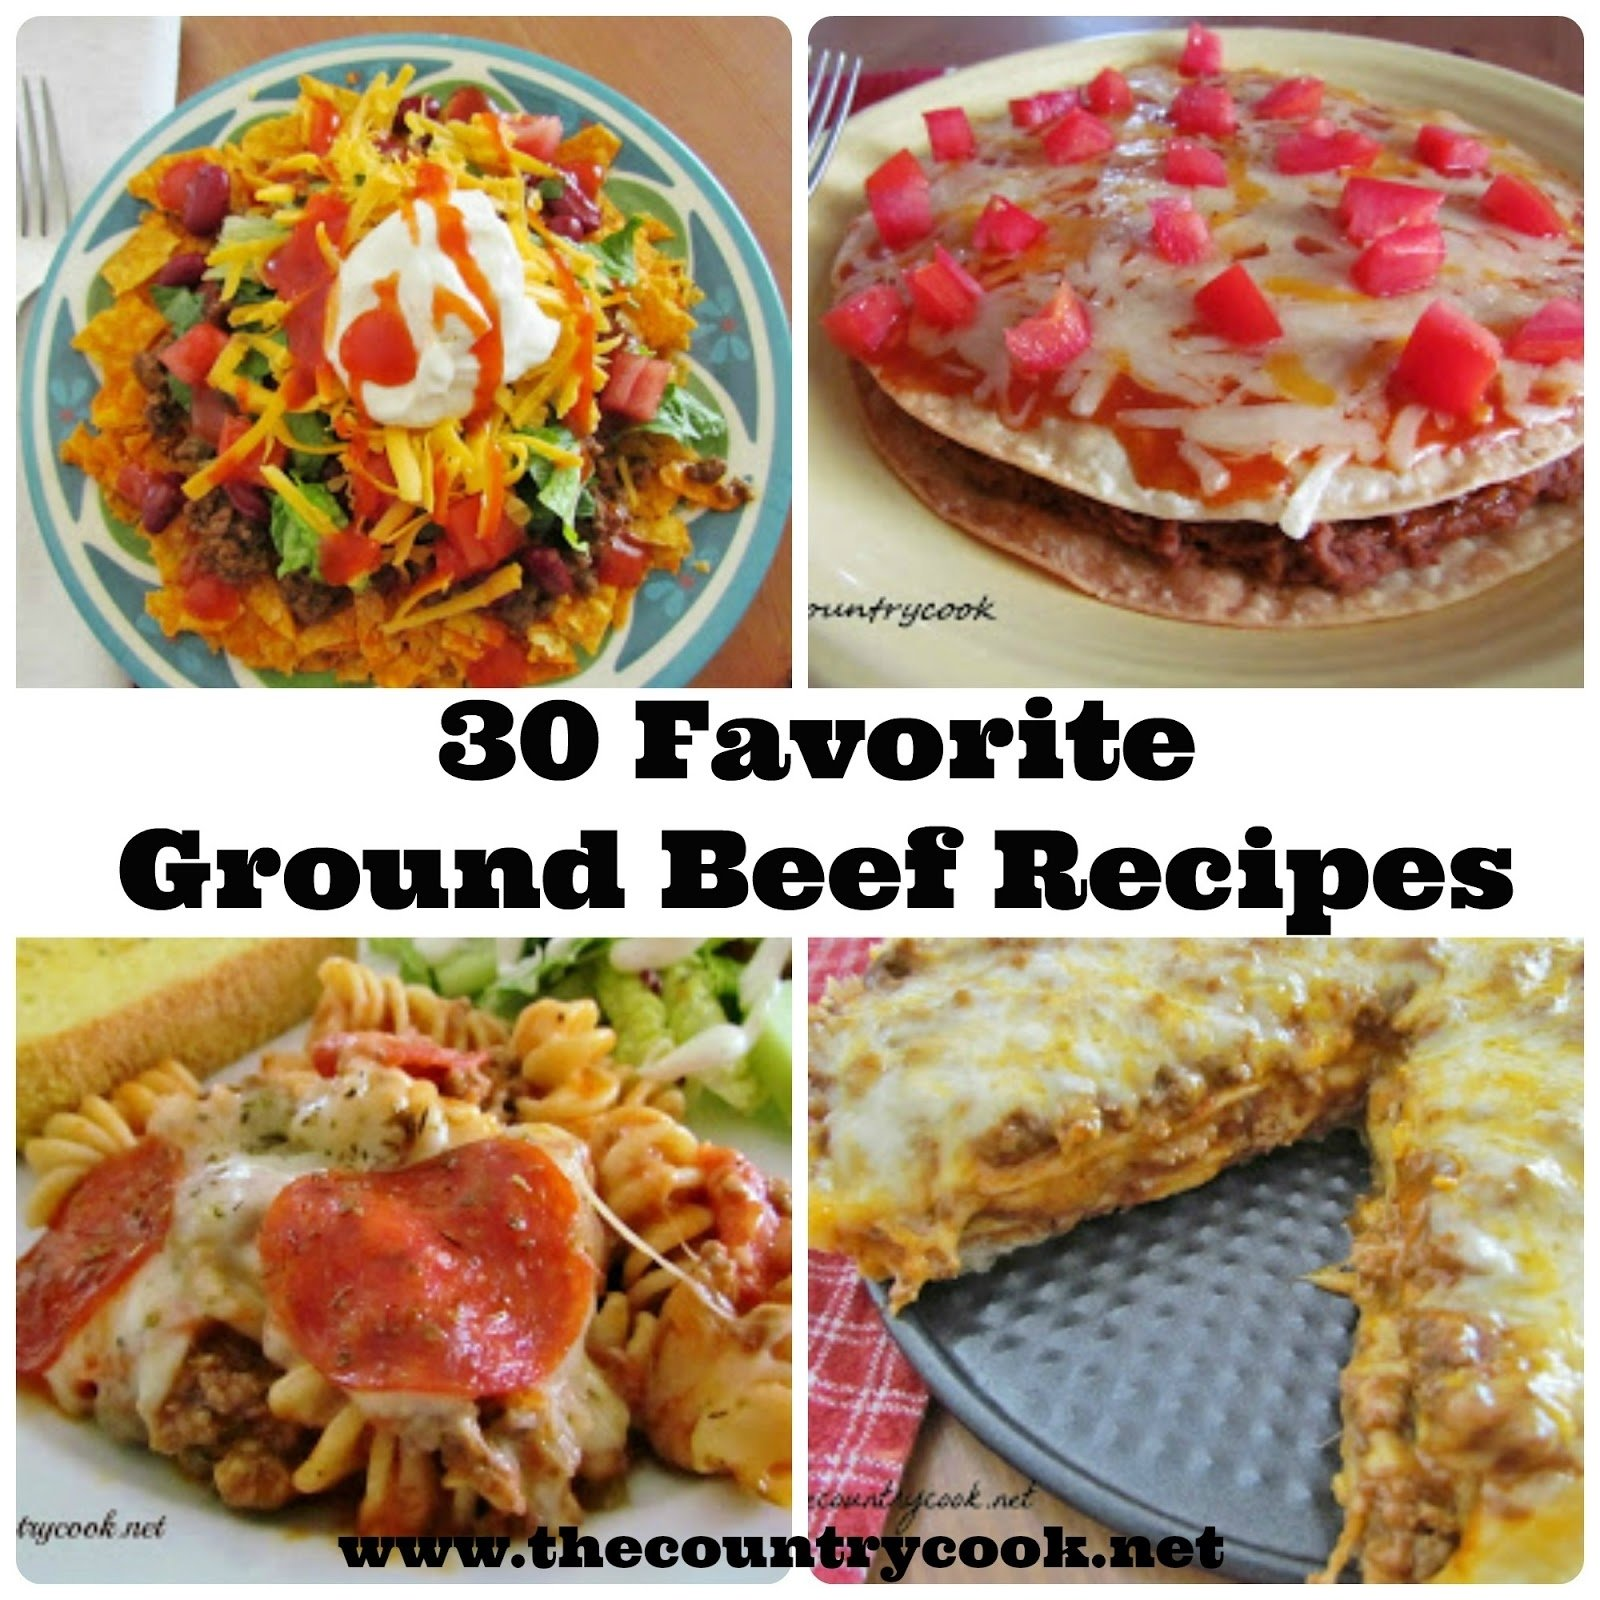 10 Stylish Recipe Ideas For Ground Beef 30 favorite ground beef recipes the country cook 4 2020